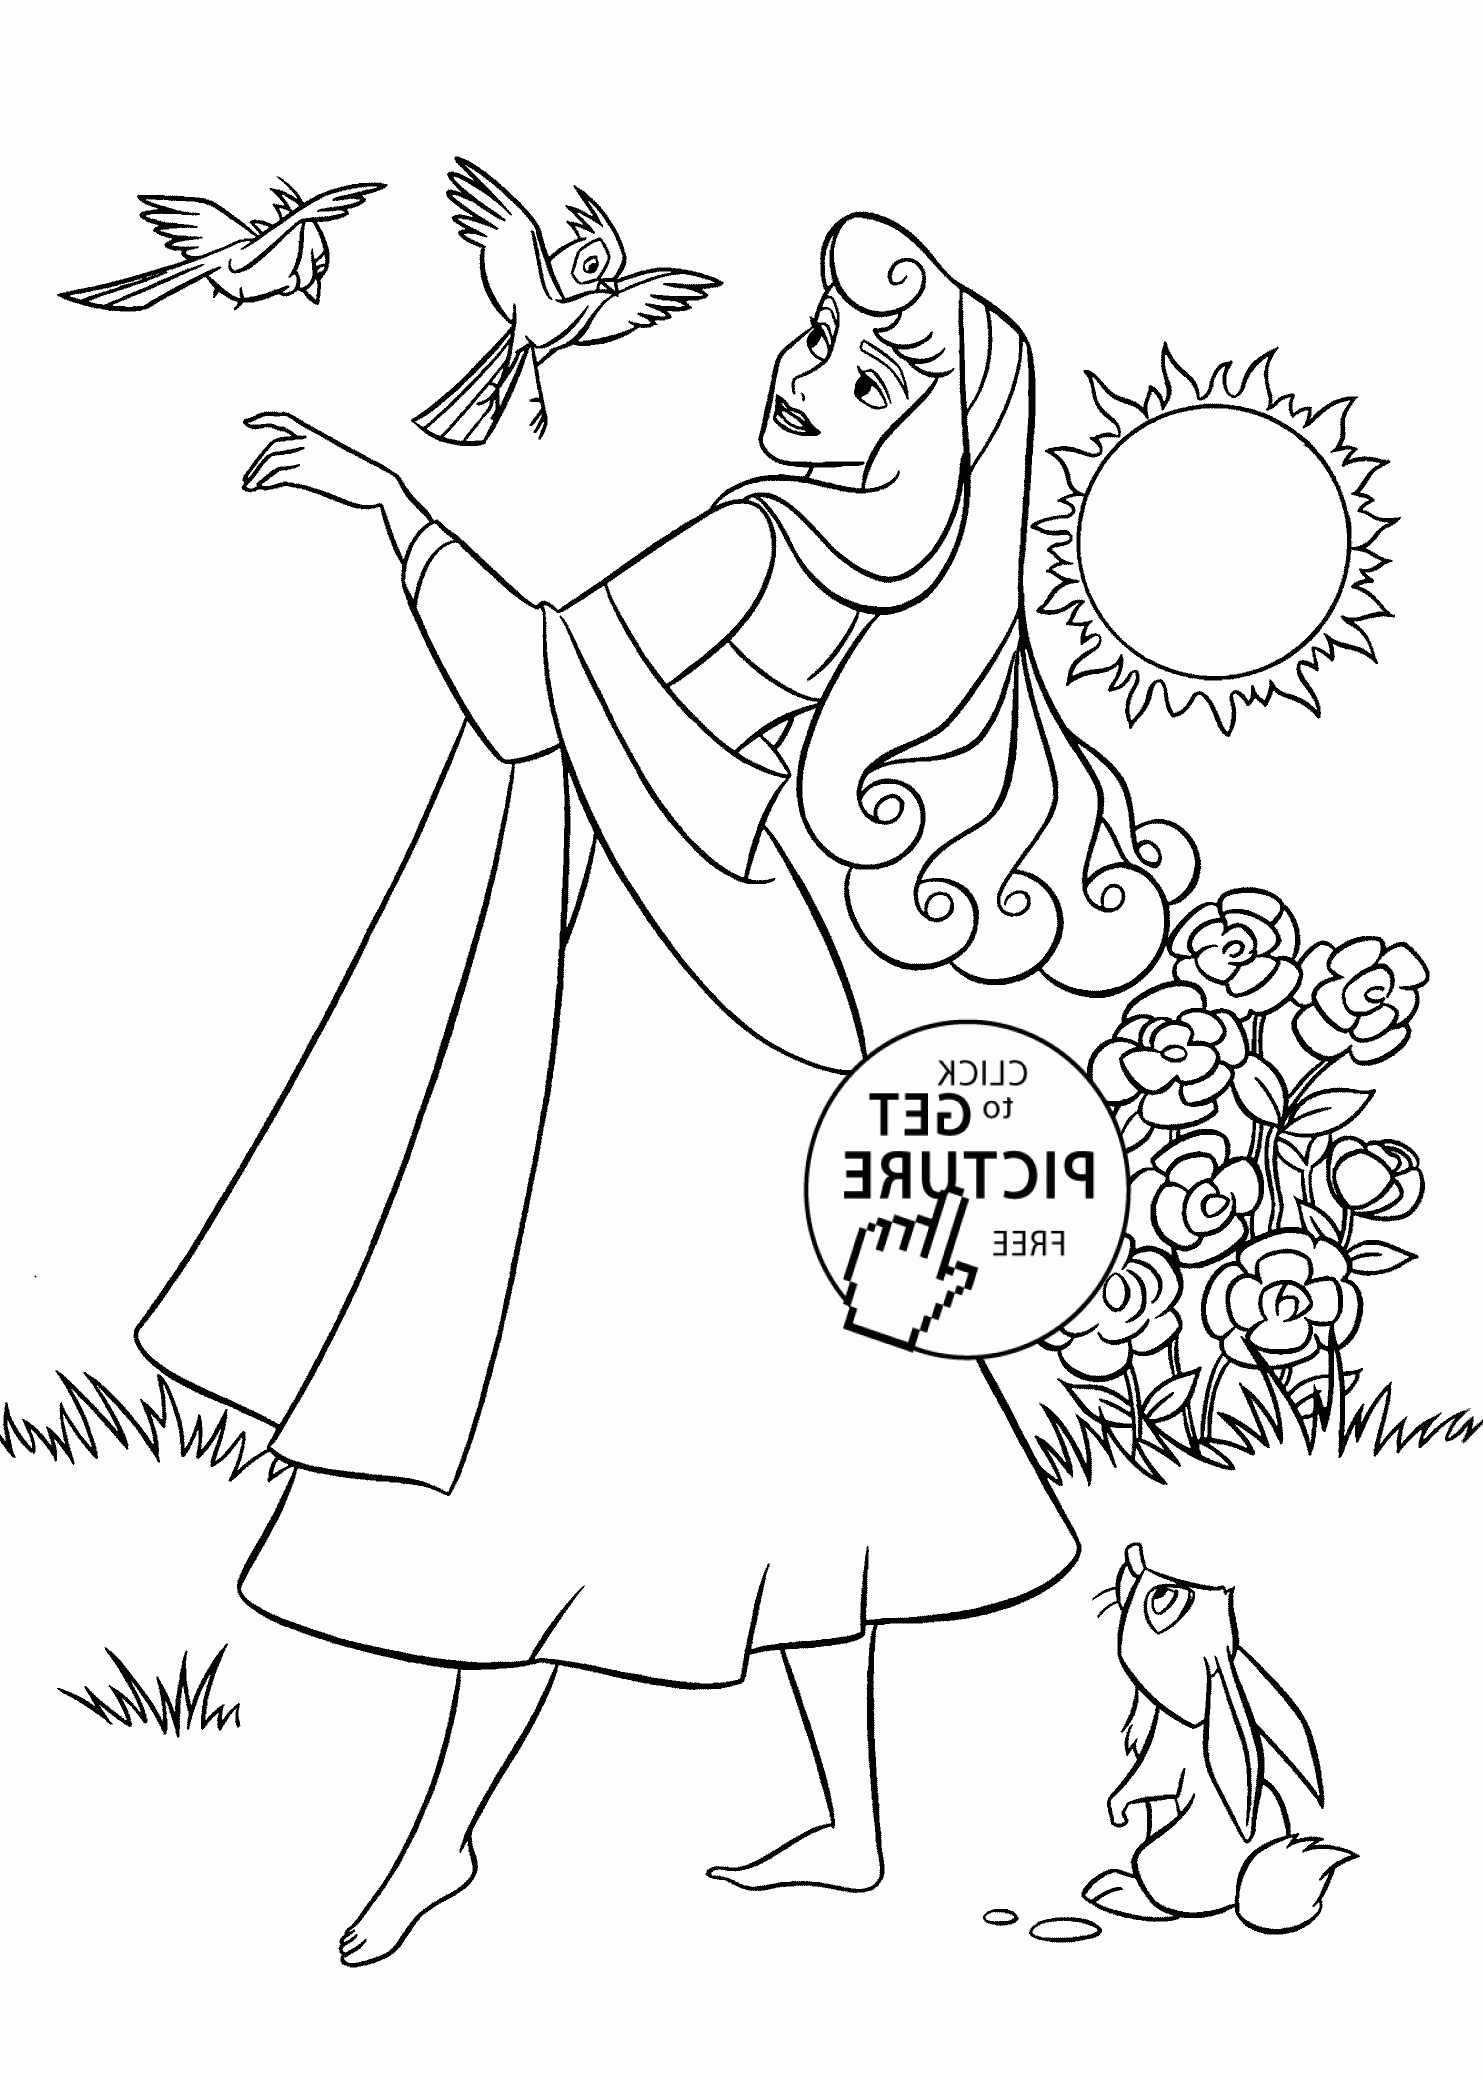 1483x2079 Palma And Monkey Nature Coloring Page For Kids Unique Nature Black